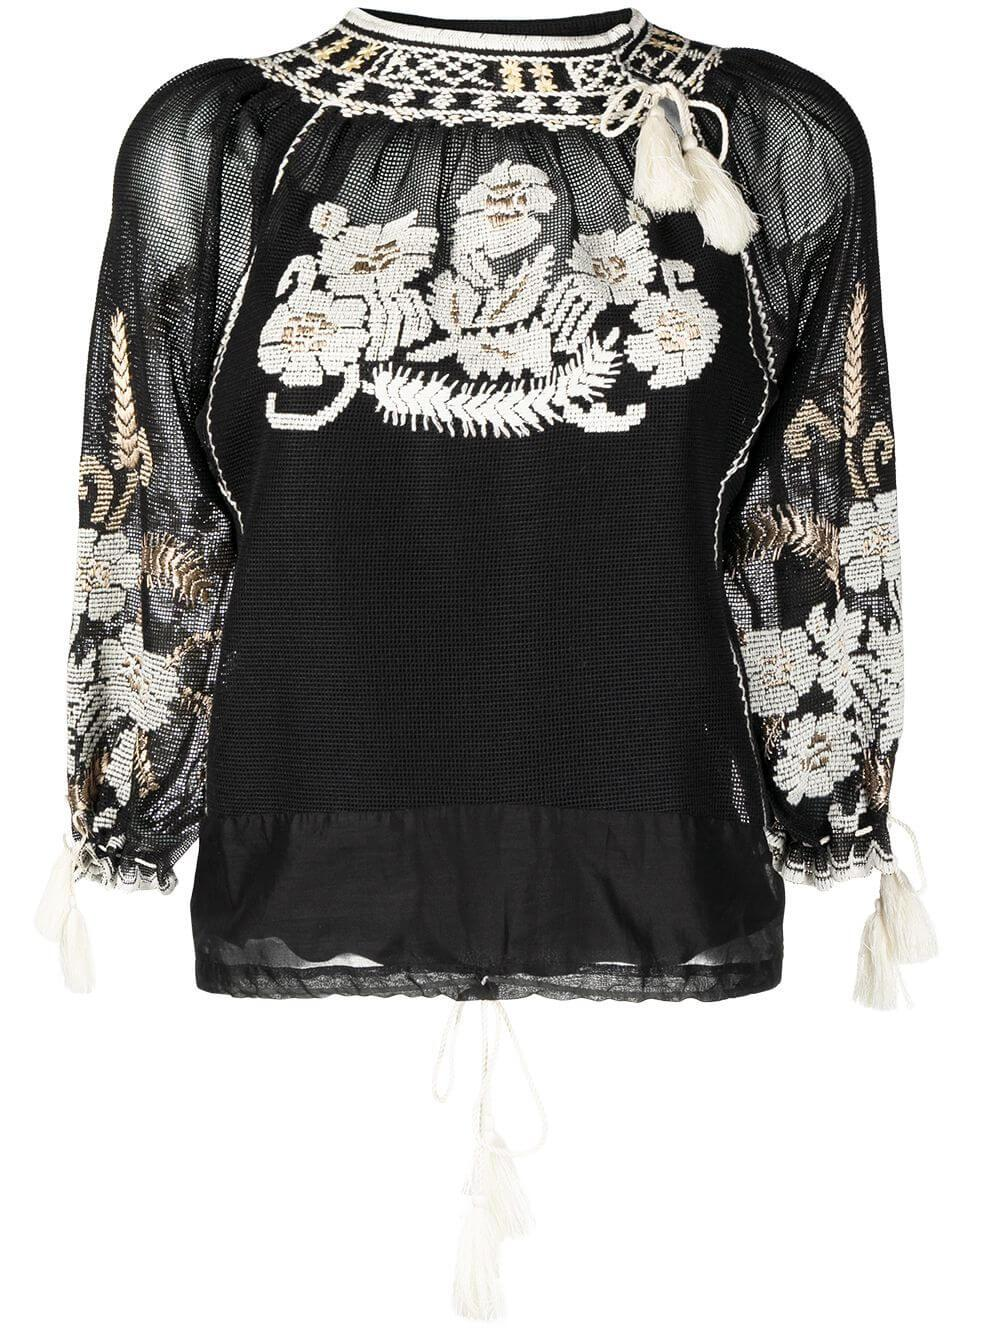 Floral Embroidered Top Item # VR3AB03M5QG